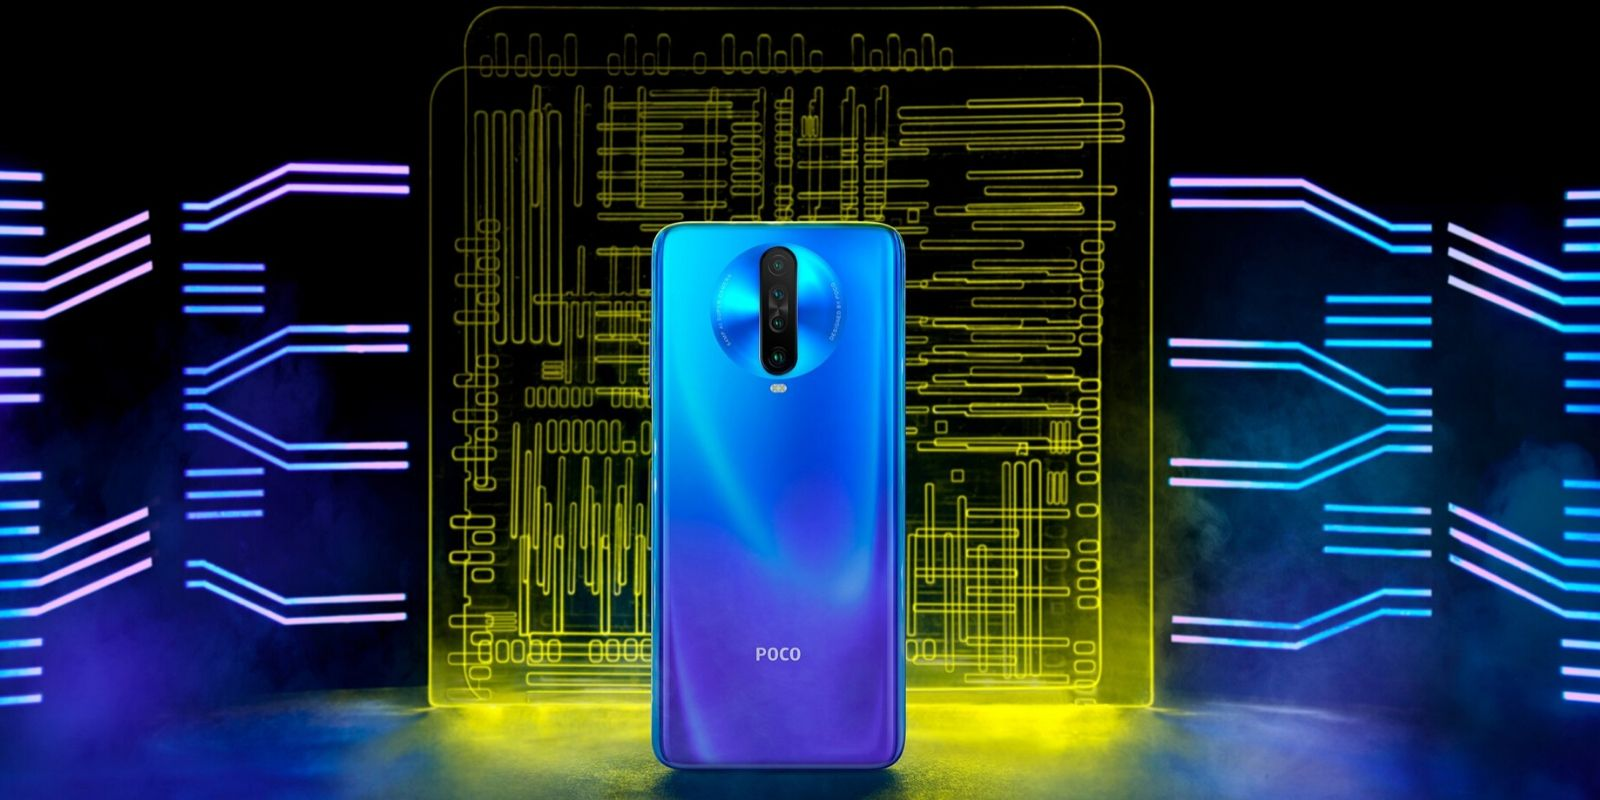 POCO X2 launches with 120Hz display and 4500 mAh battery